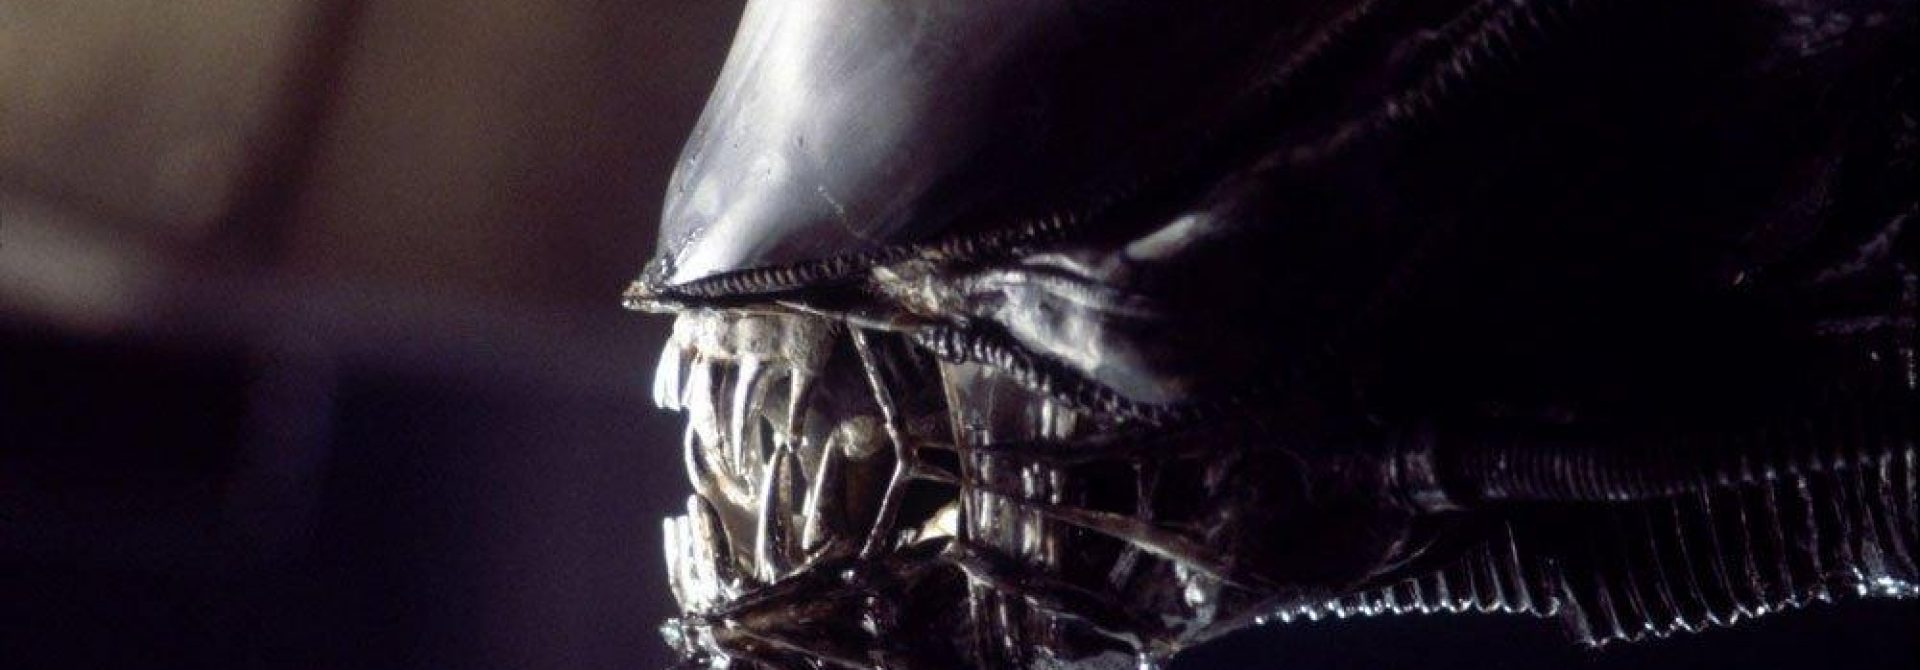 Alien TV Show Coming To FX And Hulu